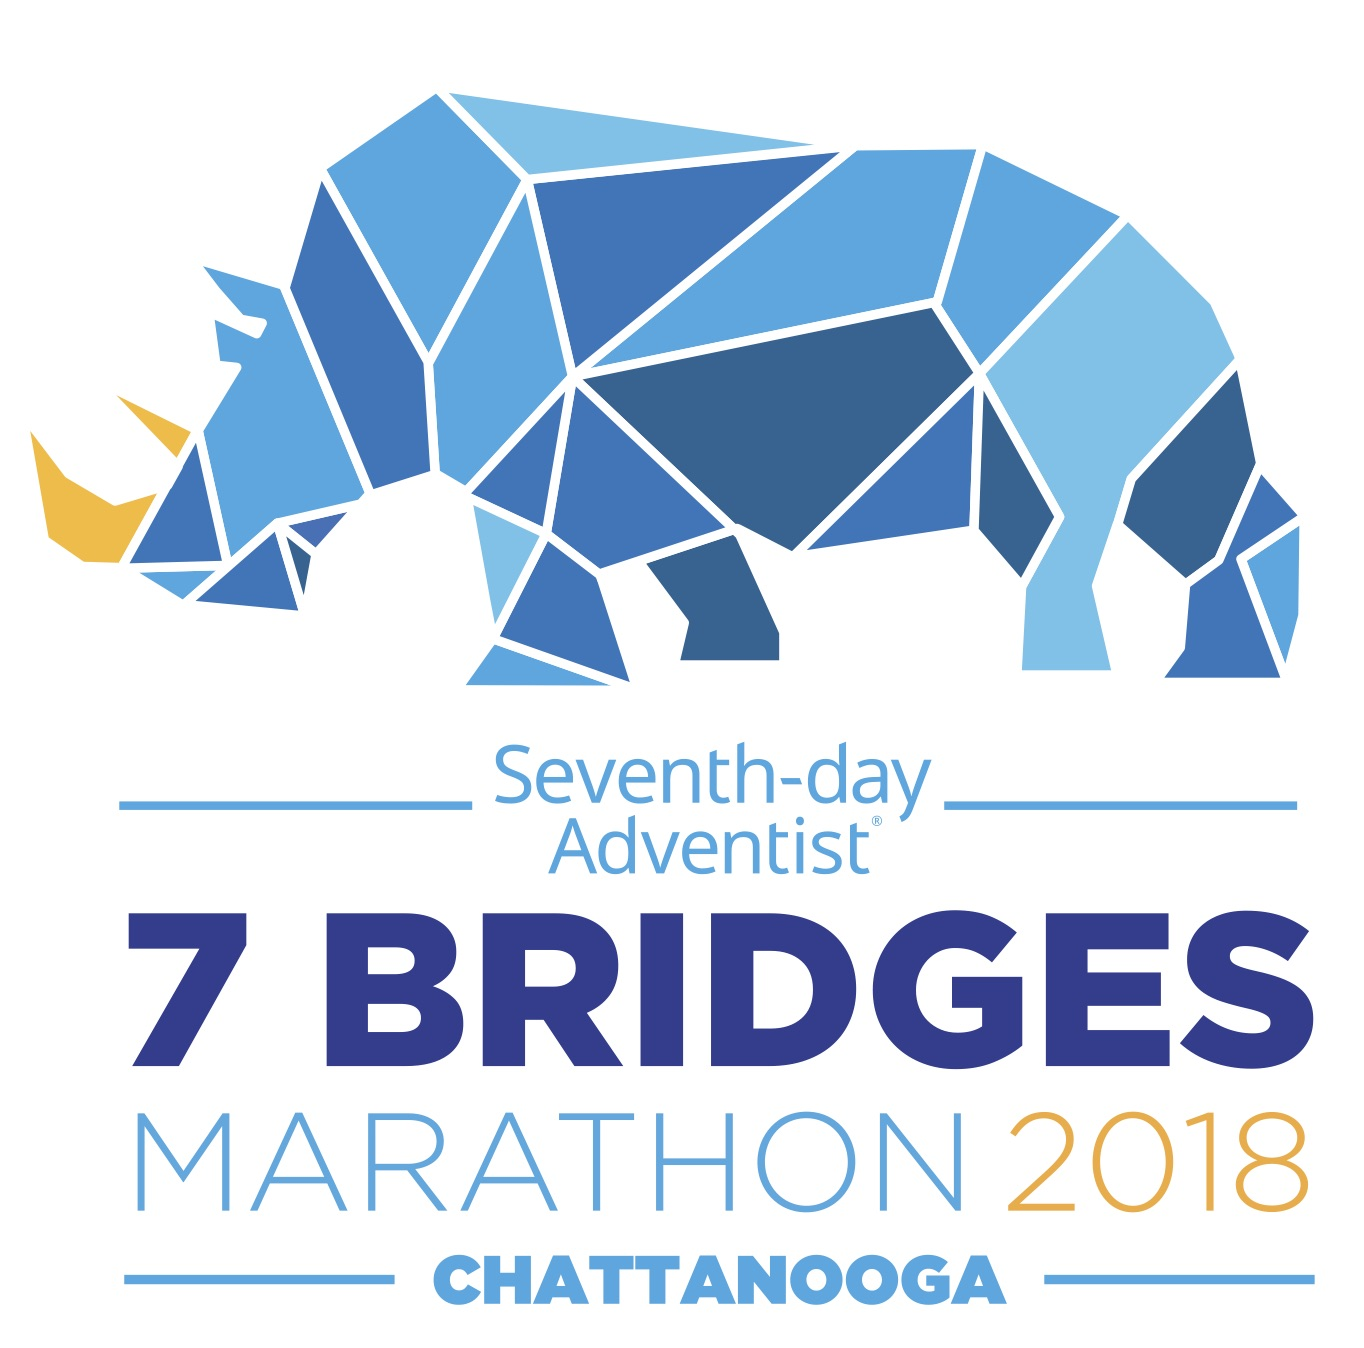 7 Bridges Marathon